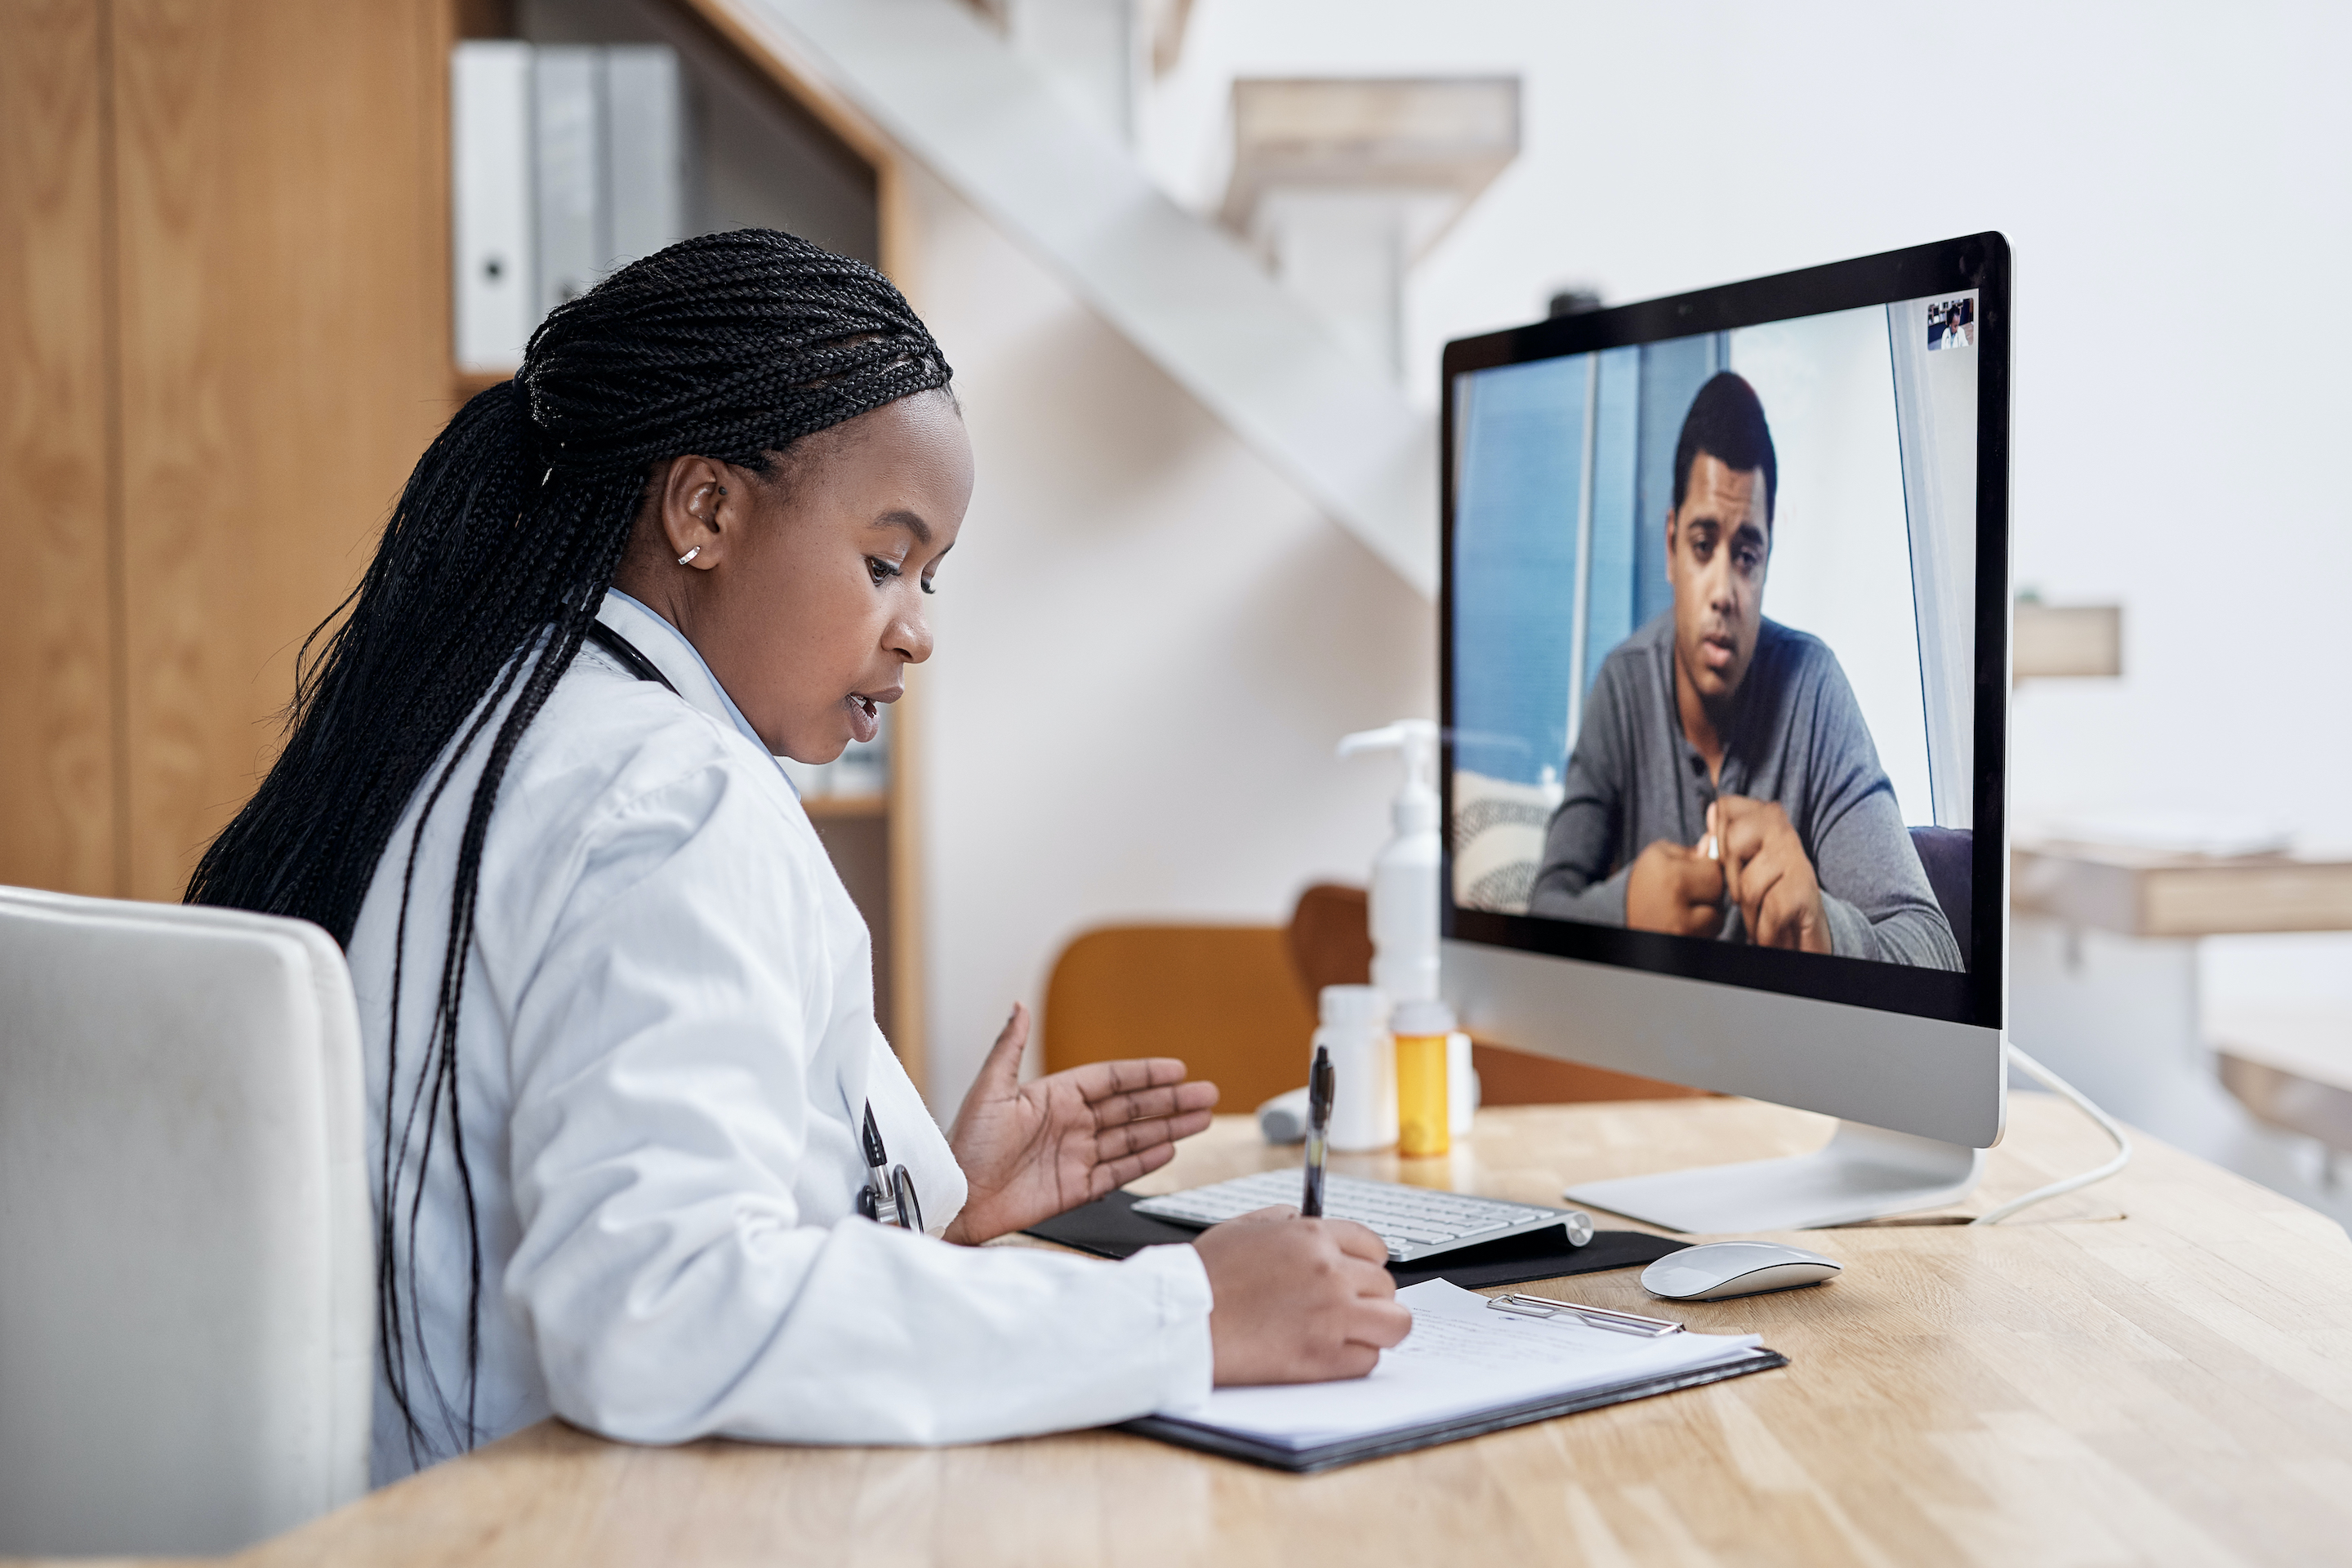 fortune.com - Hannah Norman - The pandemic made telemedicine a hit. Now, patients are feeling the growing pains